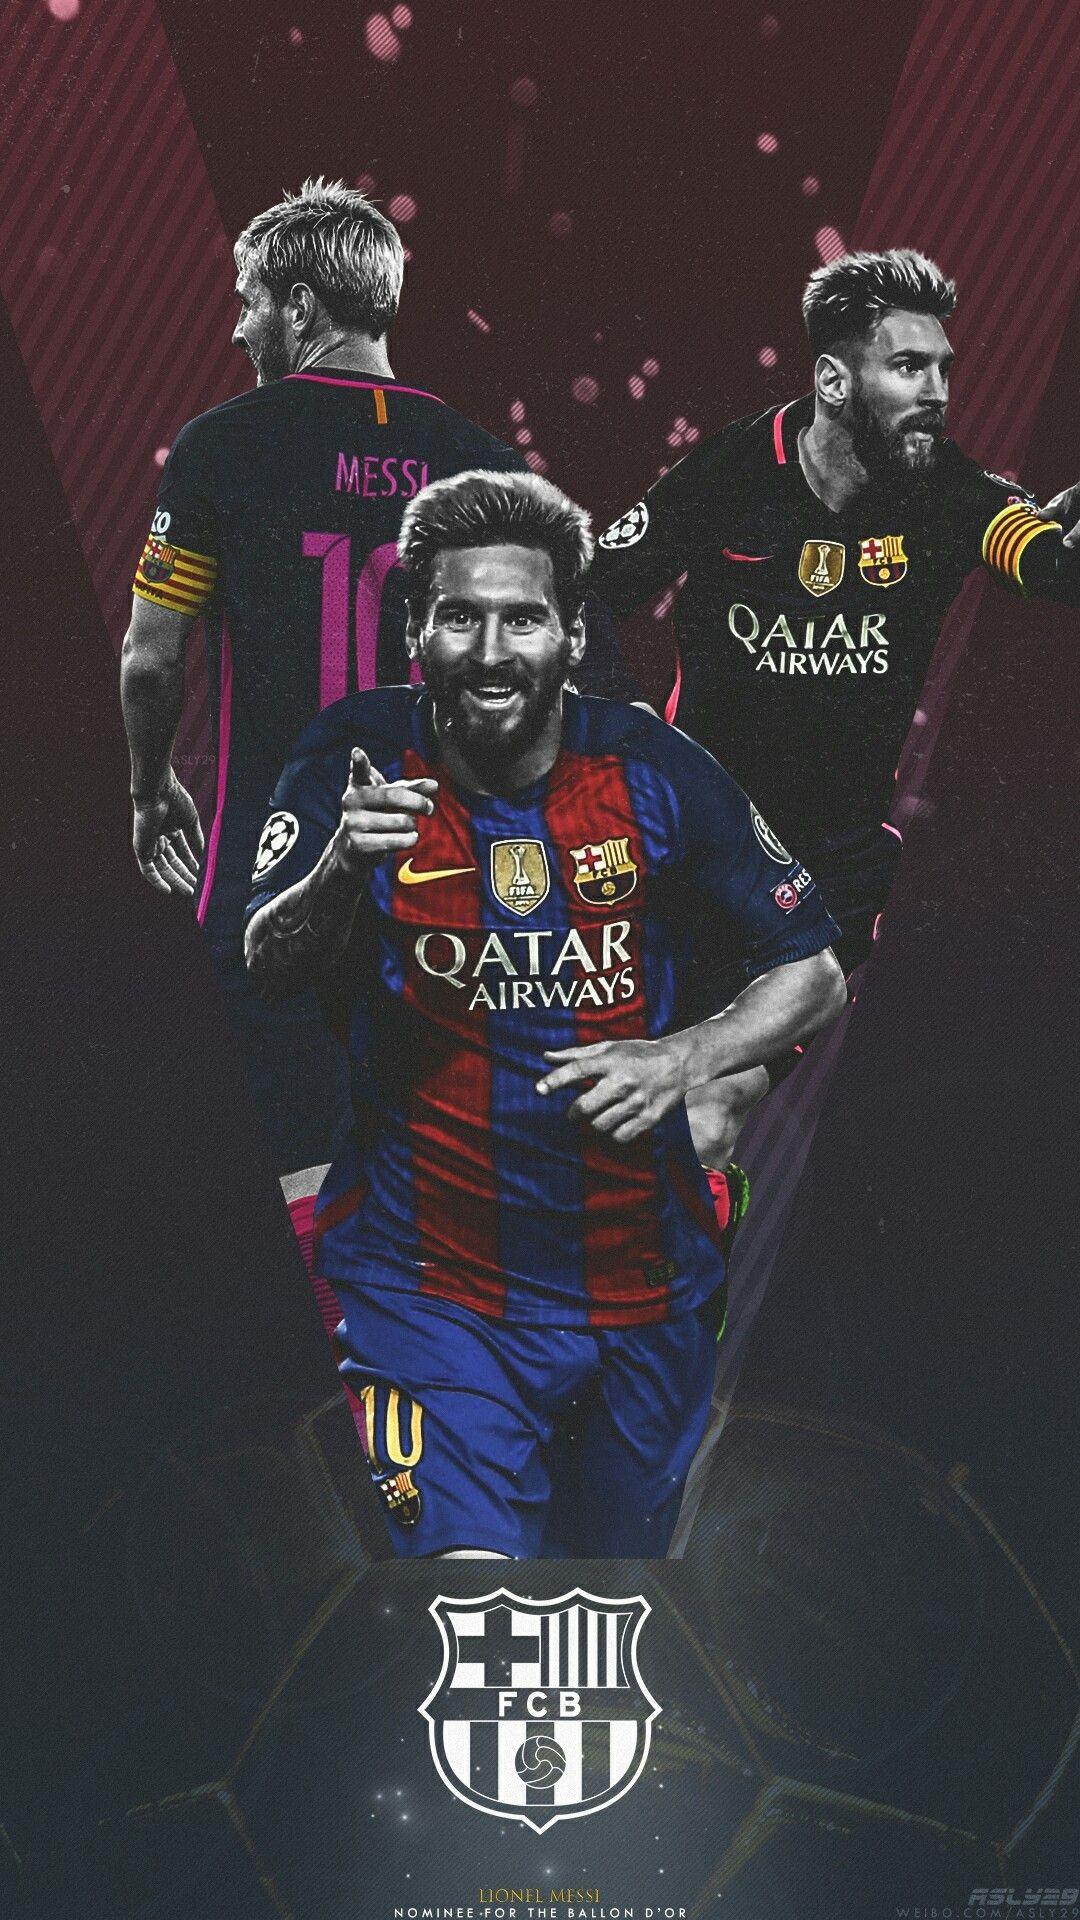 cool messi wallpaper in 2020 messi pictures lionel messi lionel messi wallpapers cool messi wallpaper in 2020 messi